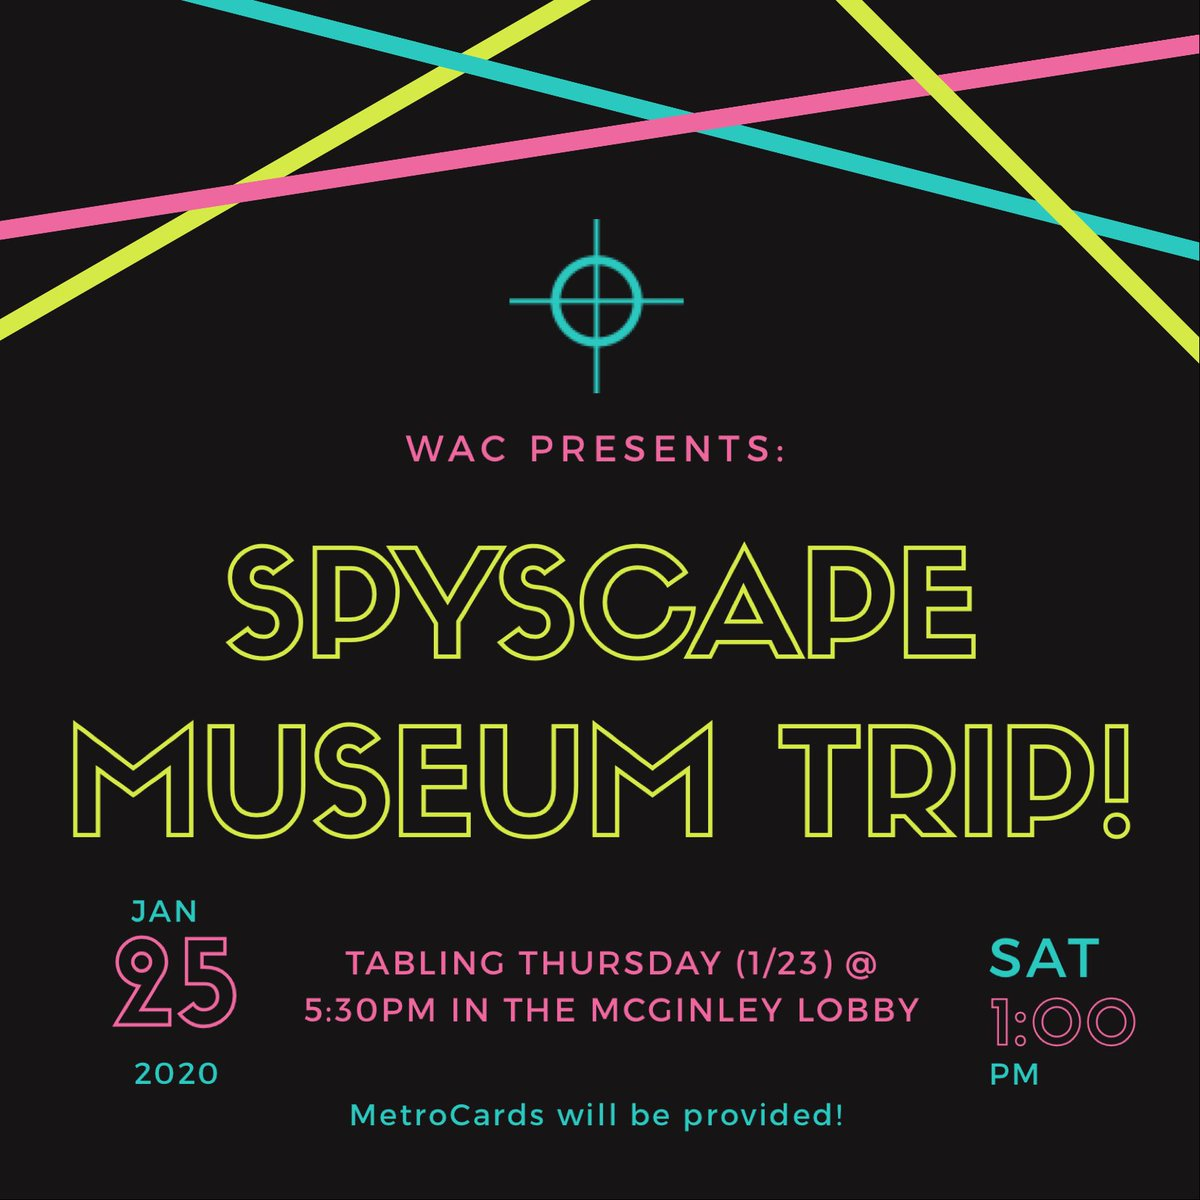 On Saturday (1/25), WAC will be taking 20 students to the SPYSCAPE Museum! If you're interested in coming, they will be tabling in the McGinley lobby on Thursday (1/23) @ 5:30pm. Come join us for an awesome trip — MetroCards will be provided!🧬🕶🕴🏼